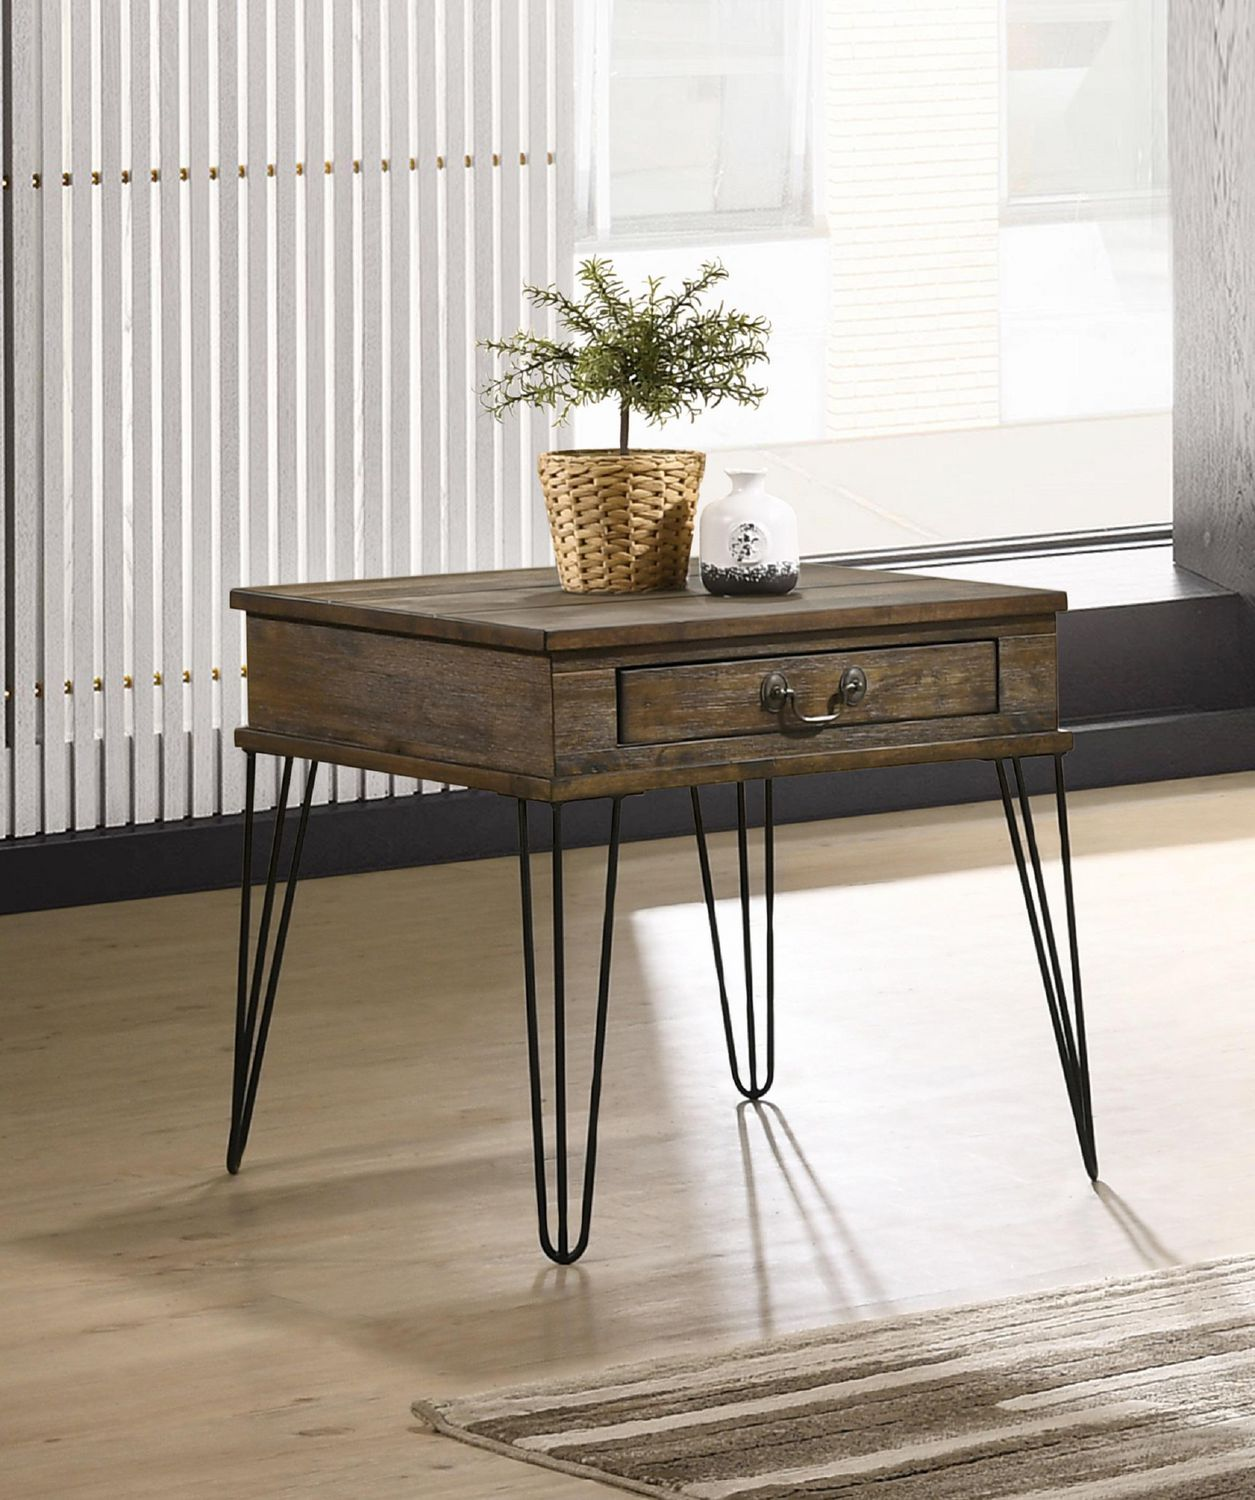 Topline Home Furnishings Oak Rustic End Table Walmart Canada